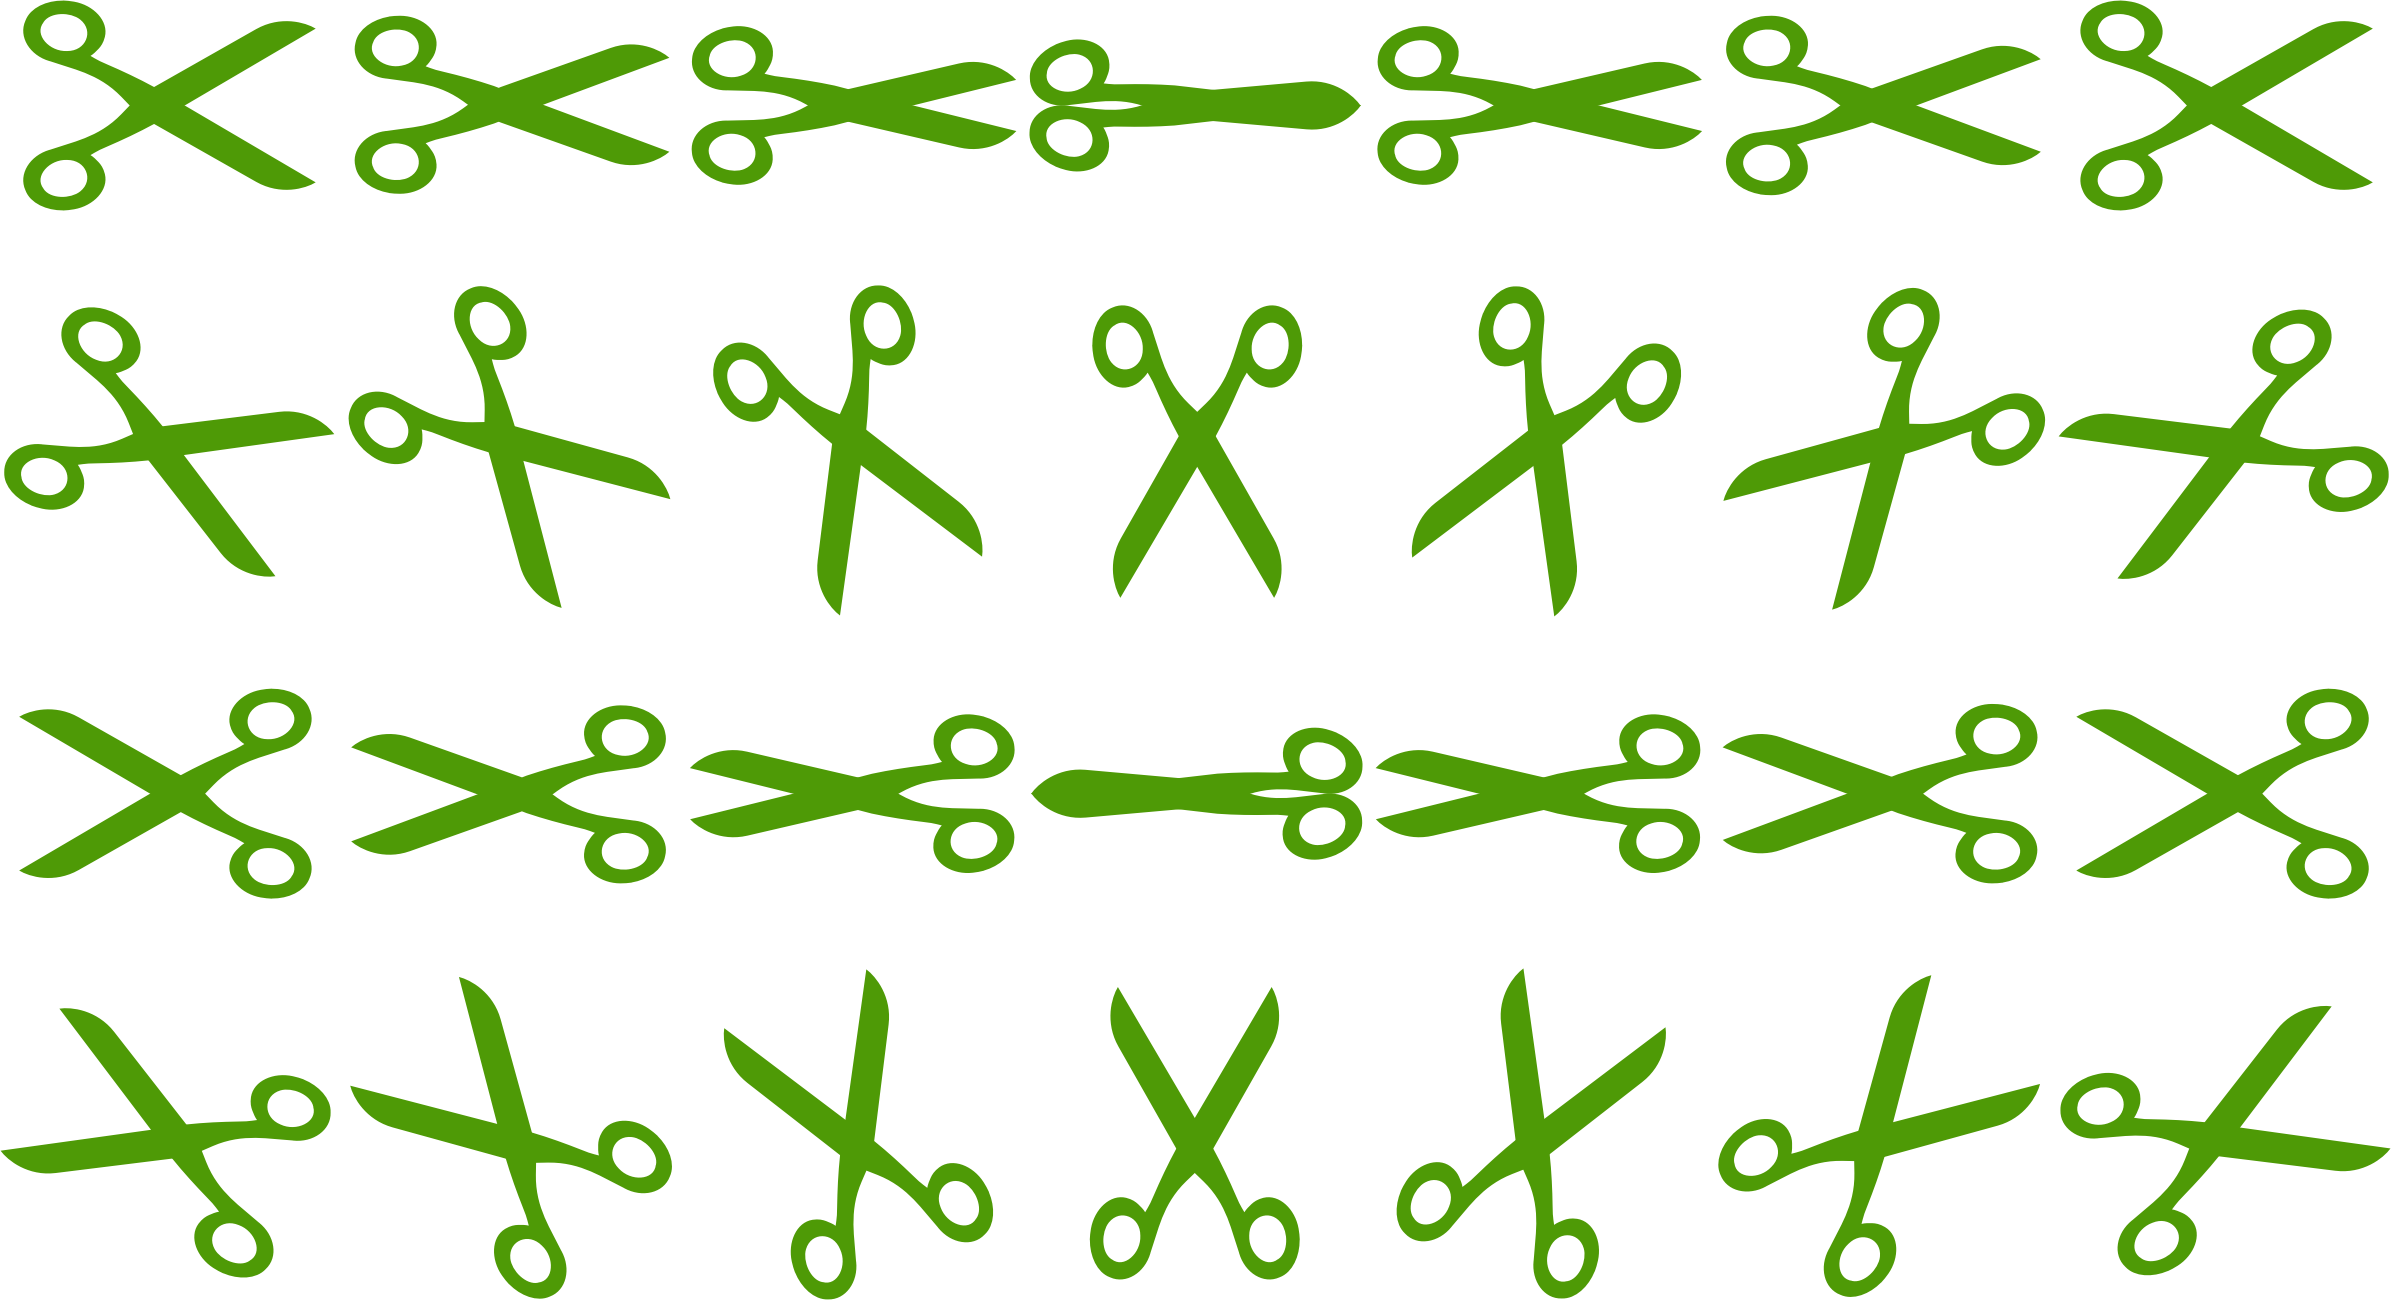 Png to sprite. Clipart openclipart scissors sheet